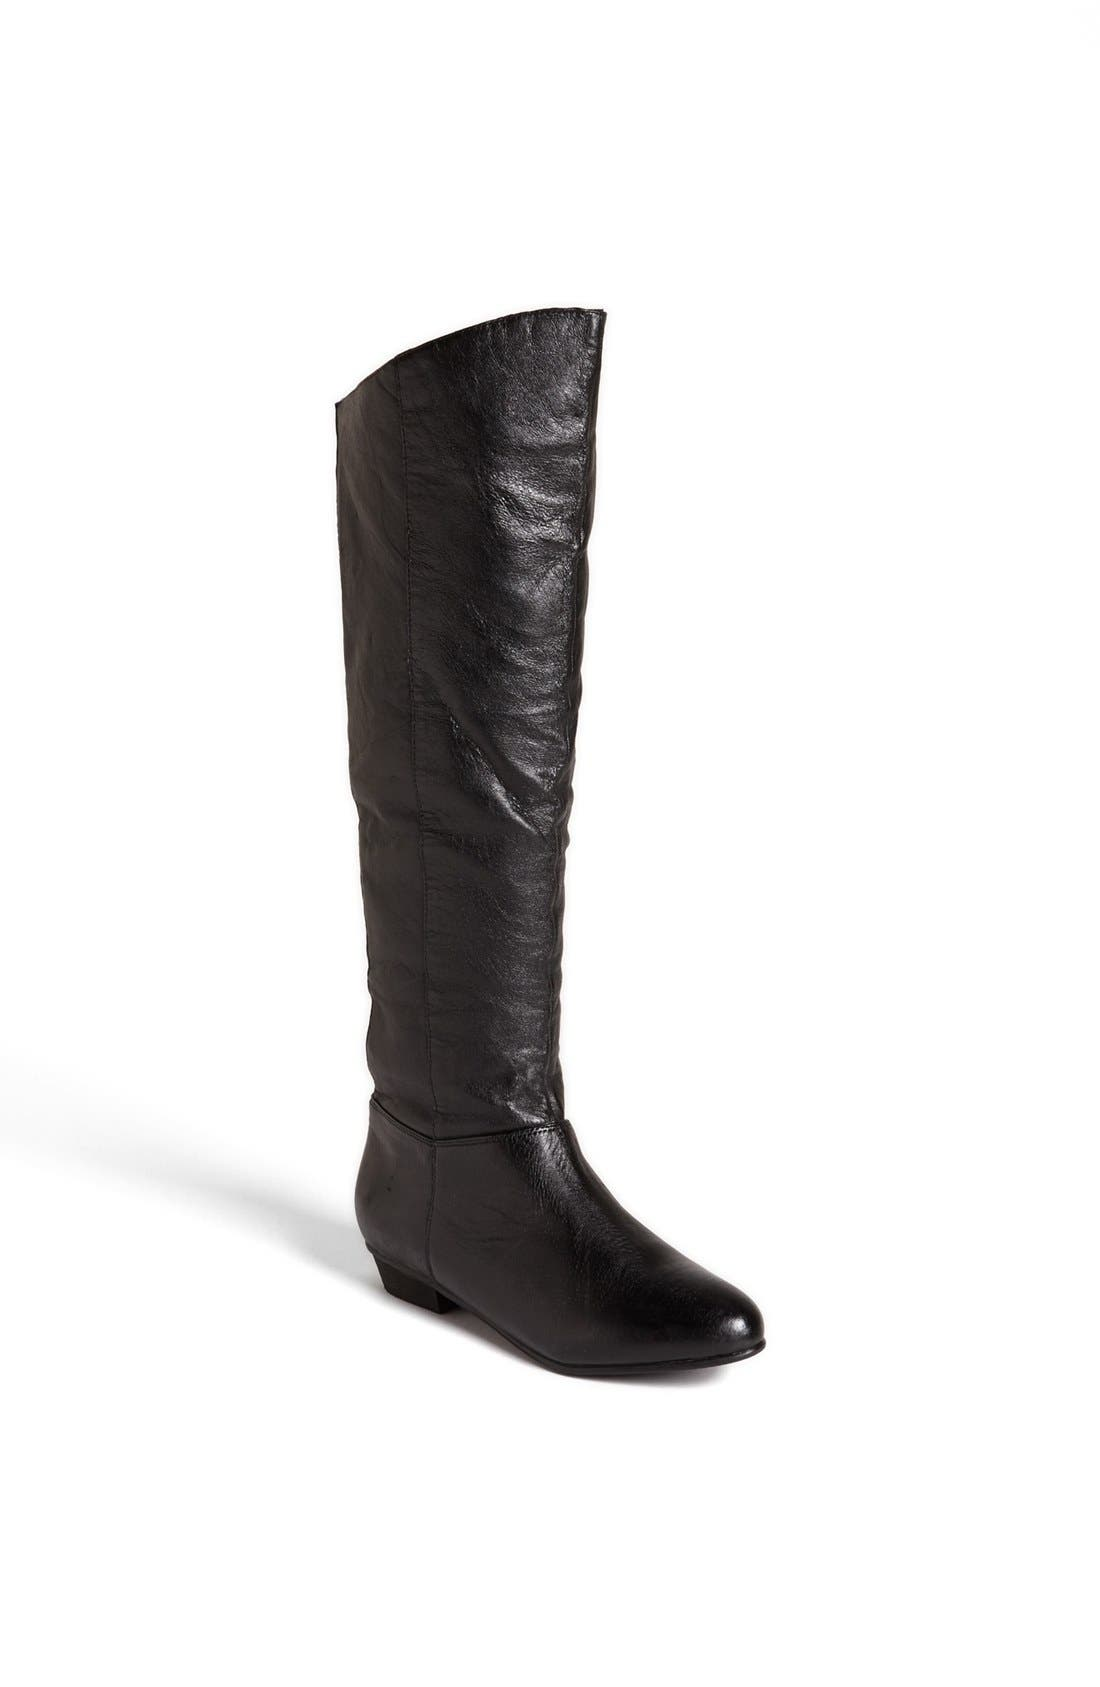 Main Image - Steve Madden 'Creation' Boot